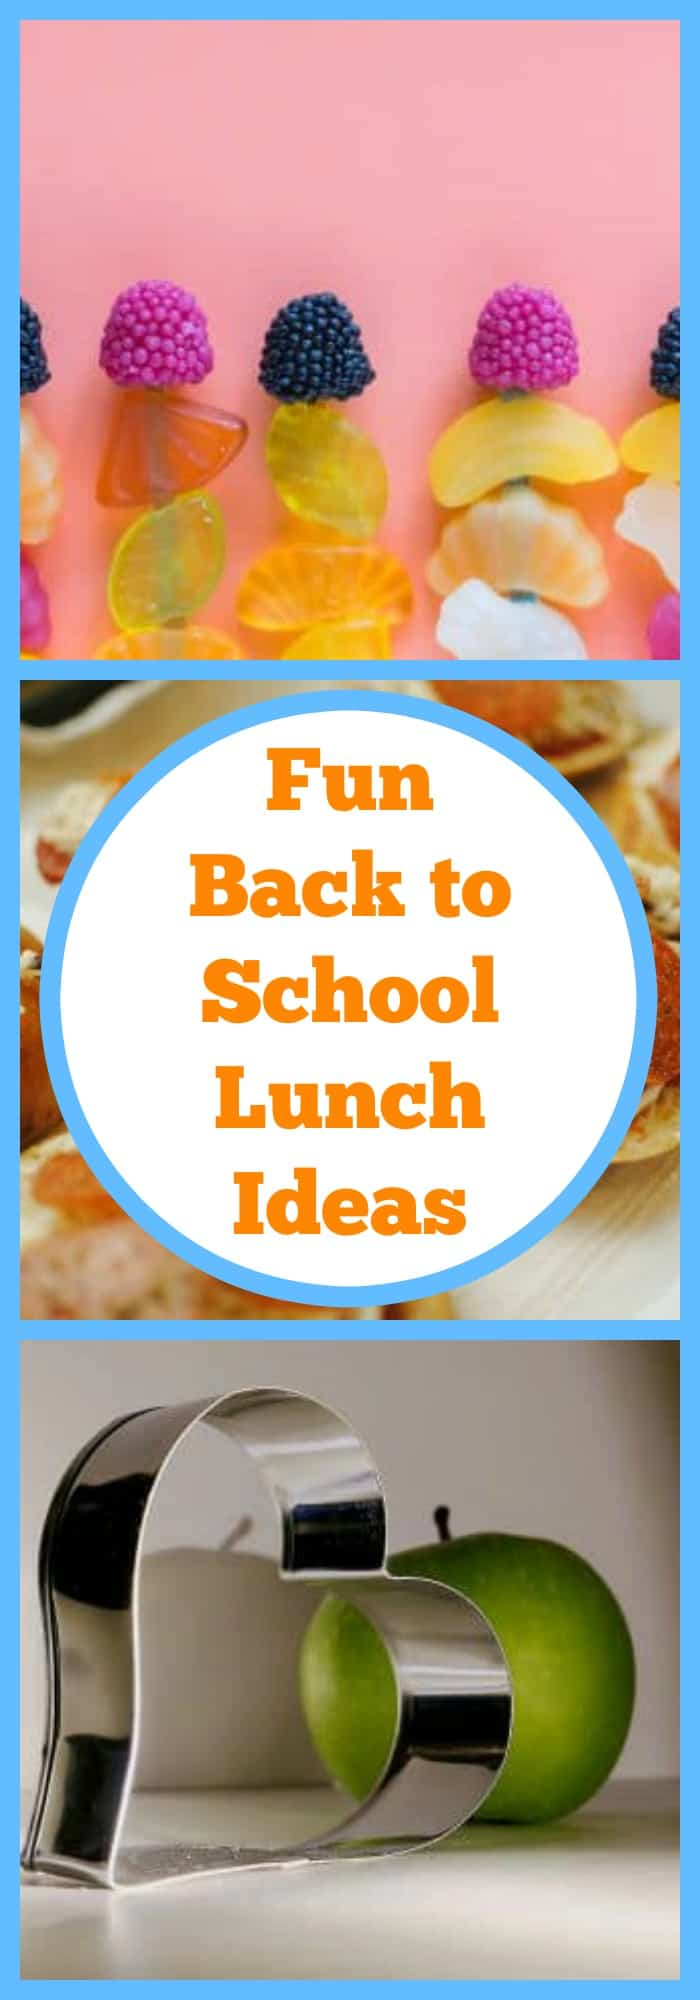 Fun Back to School Lunch Ideas